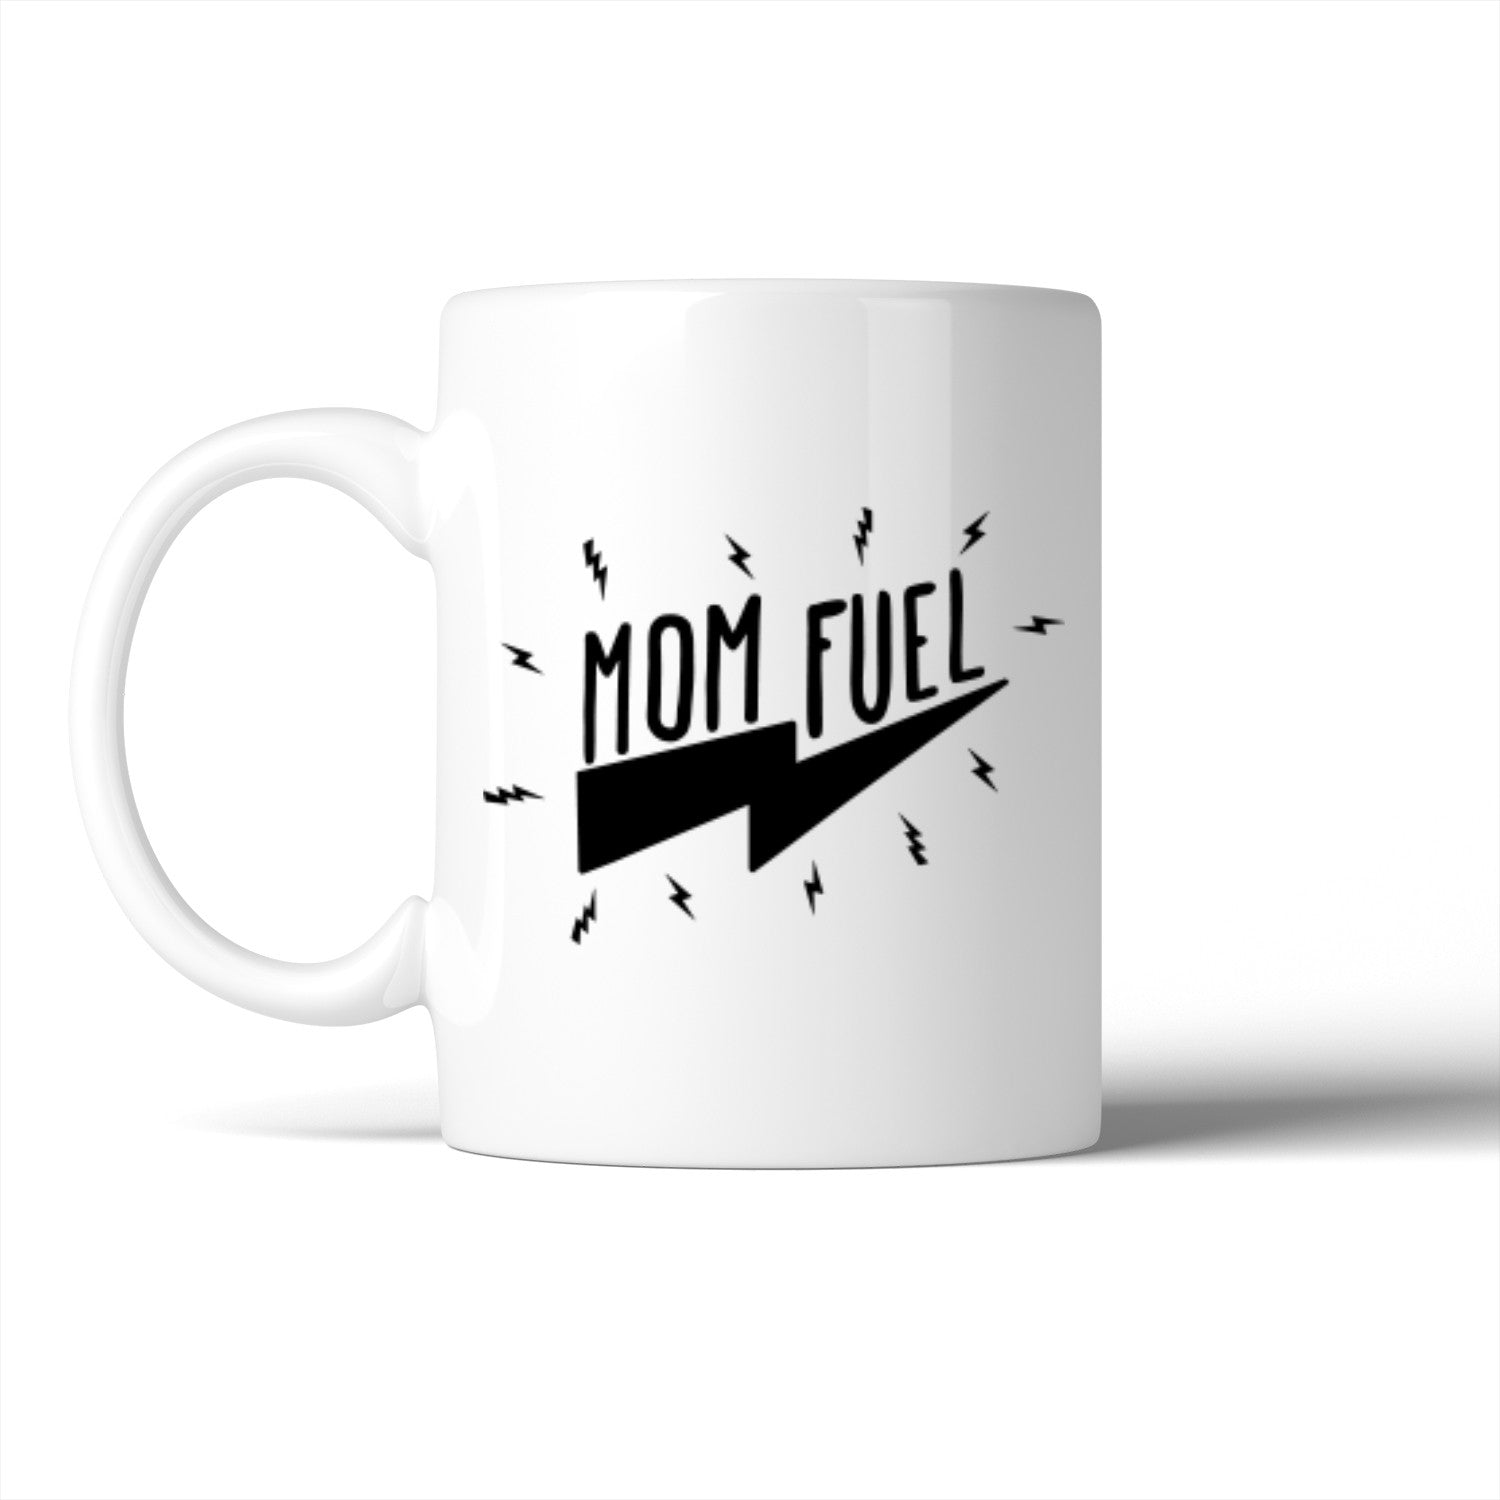 Mom Fuel Mug Cute Mother\'s Day Christmas Gift Idea For Mom - 365 IN ...